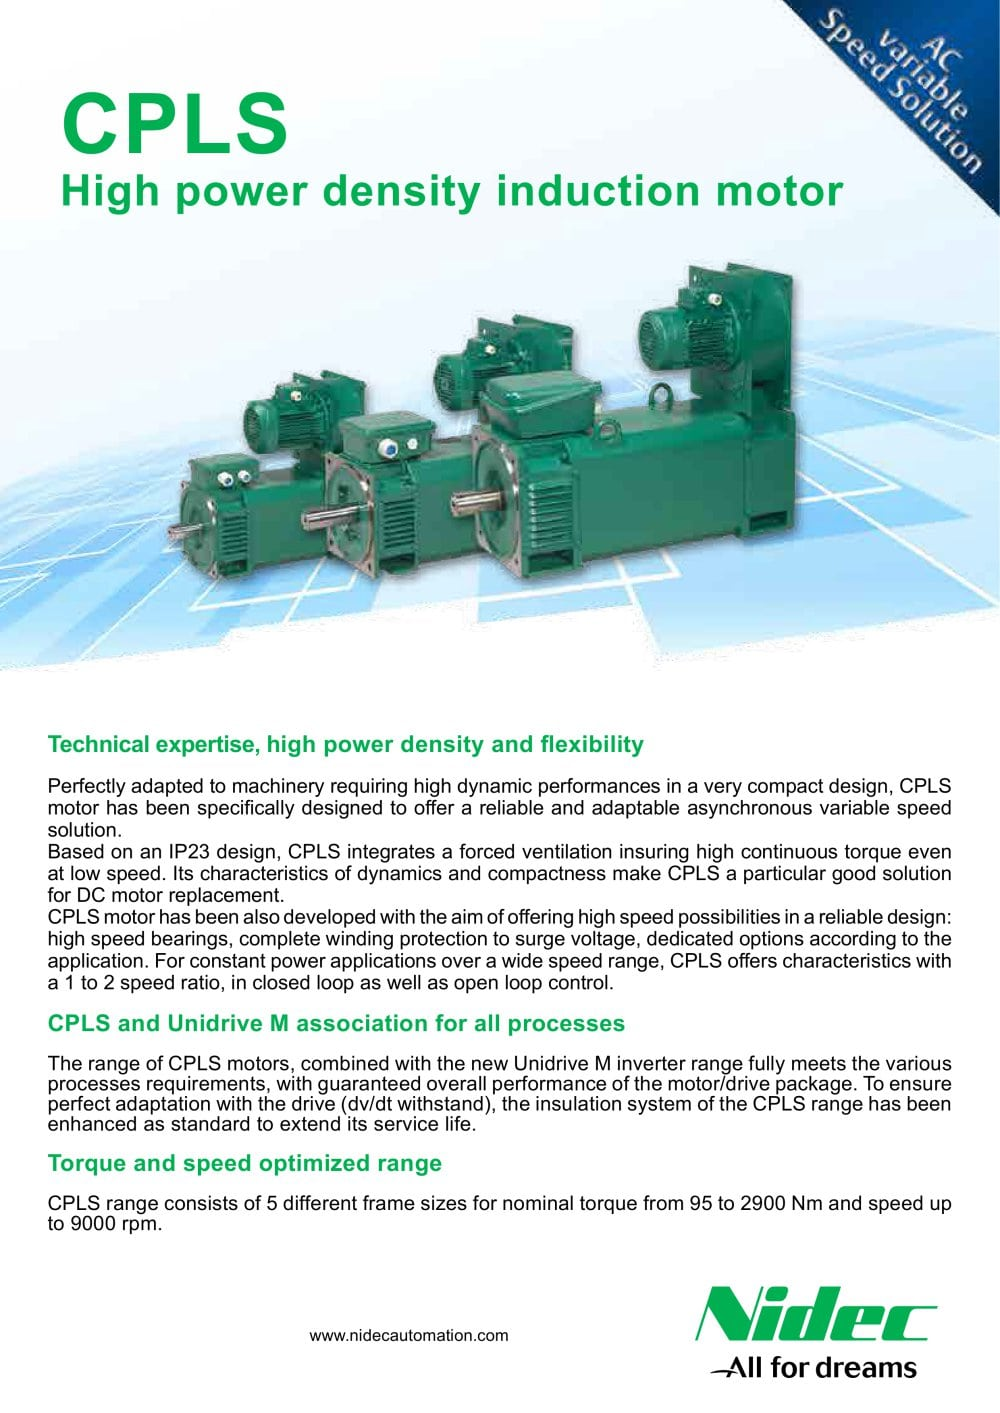 CPLS high power density induction motor - LEROY-SOMER - PDF ...